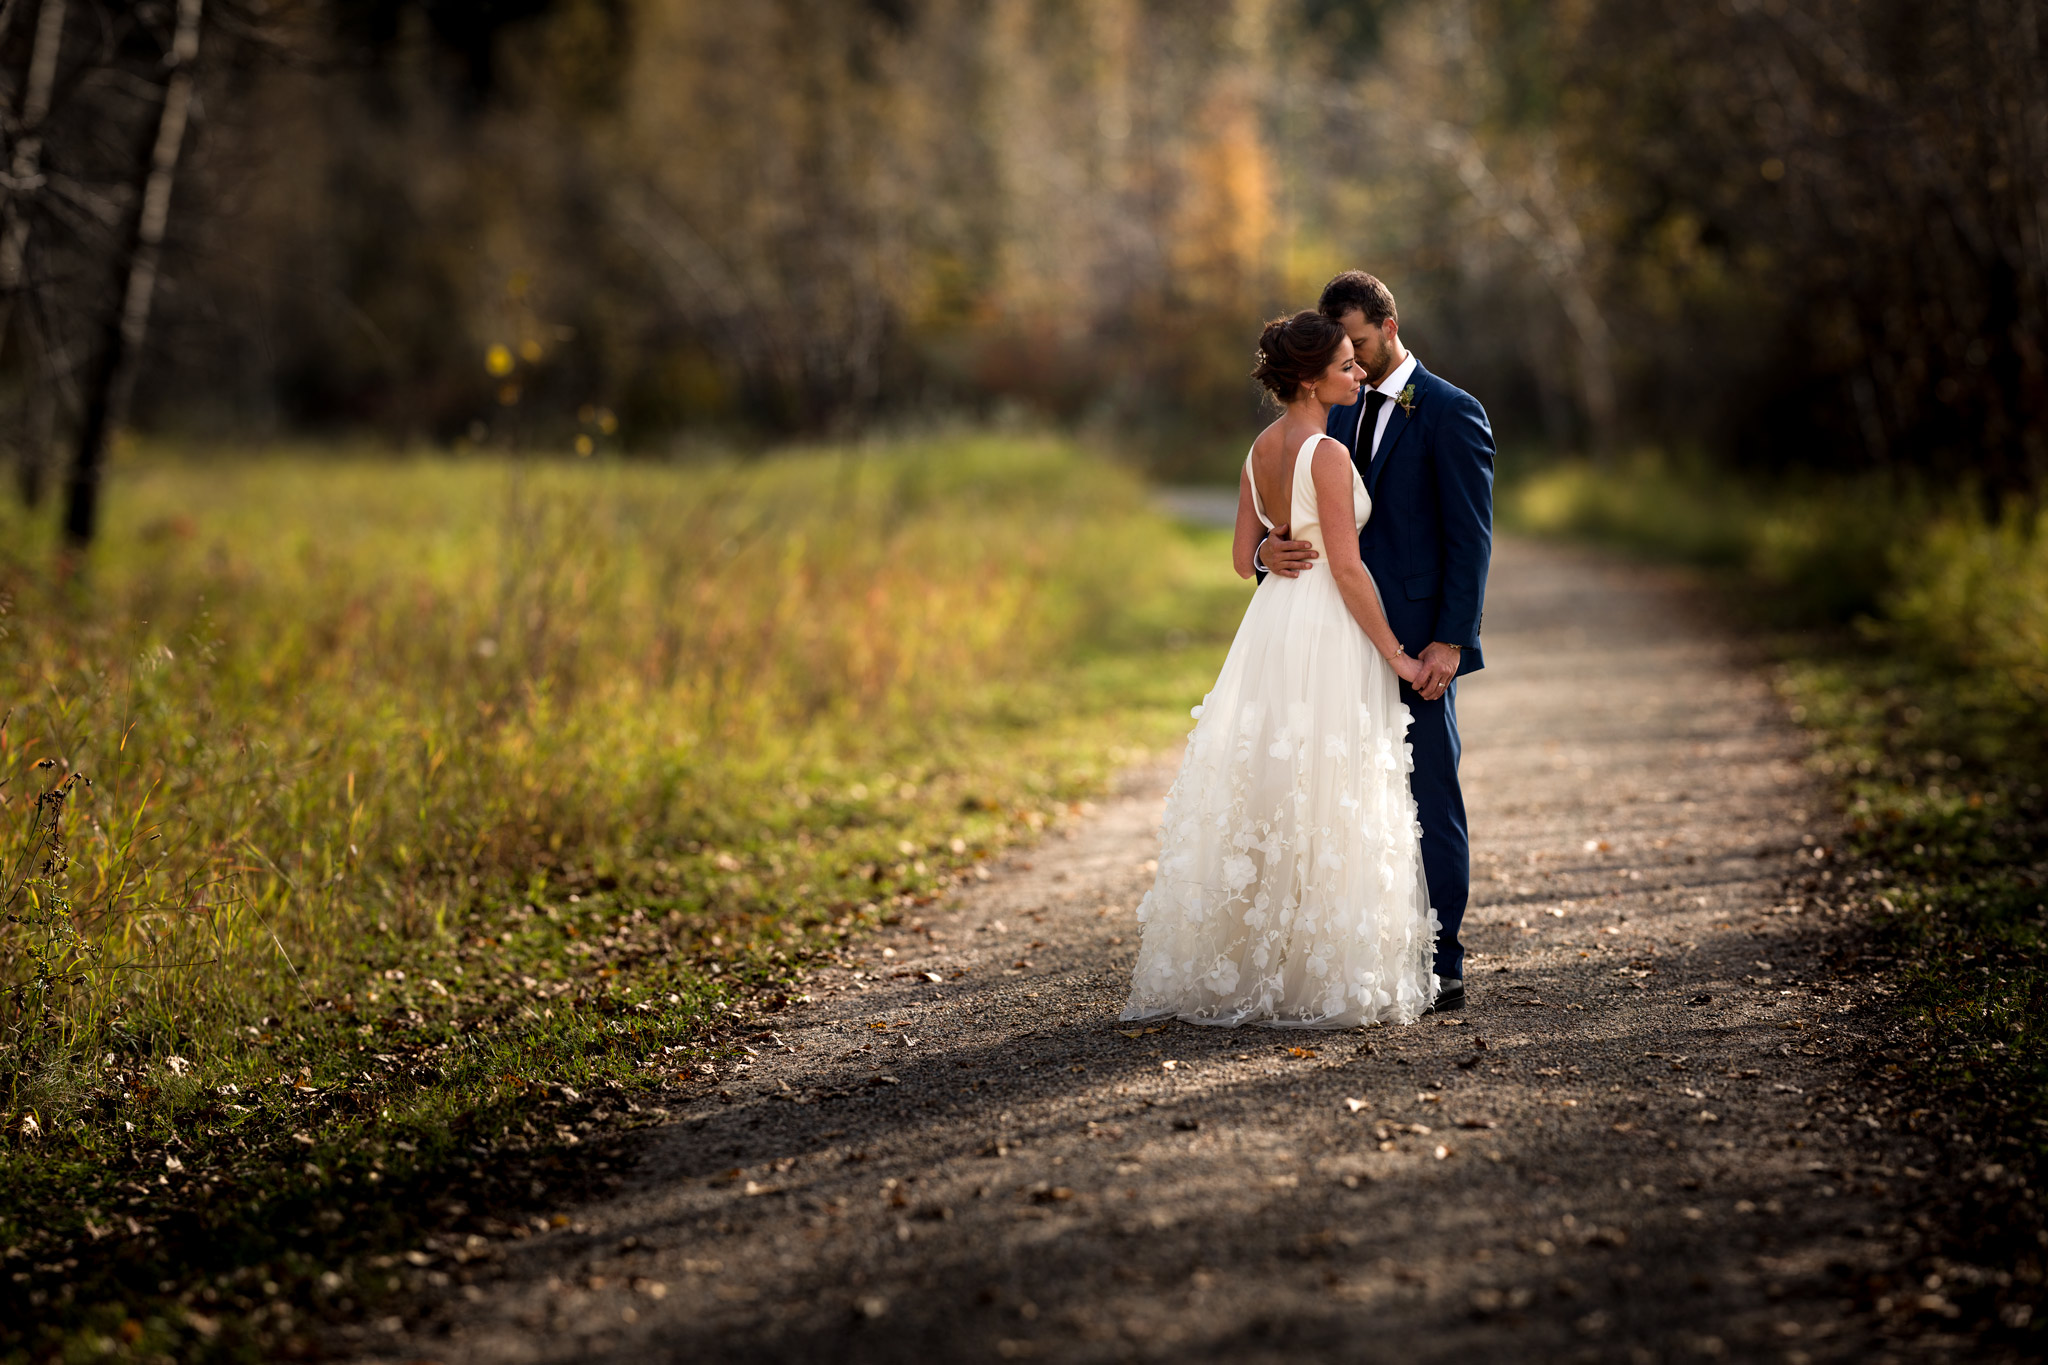 bride and groom embracing in a park by calgary wedding photographer sean leblanc